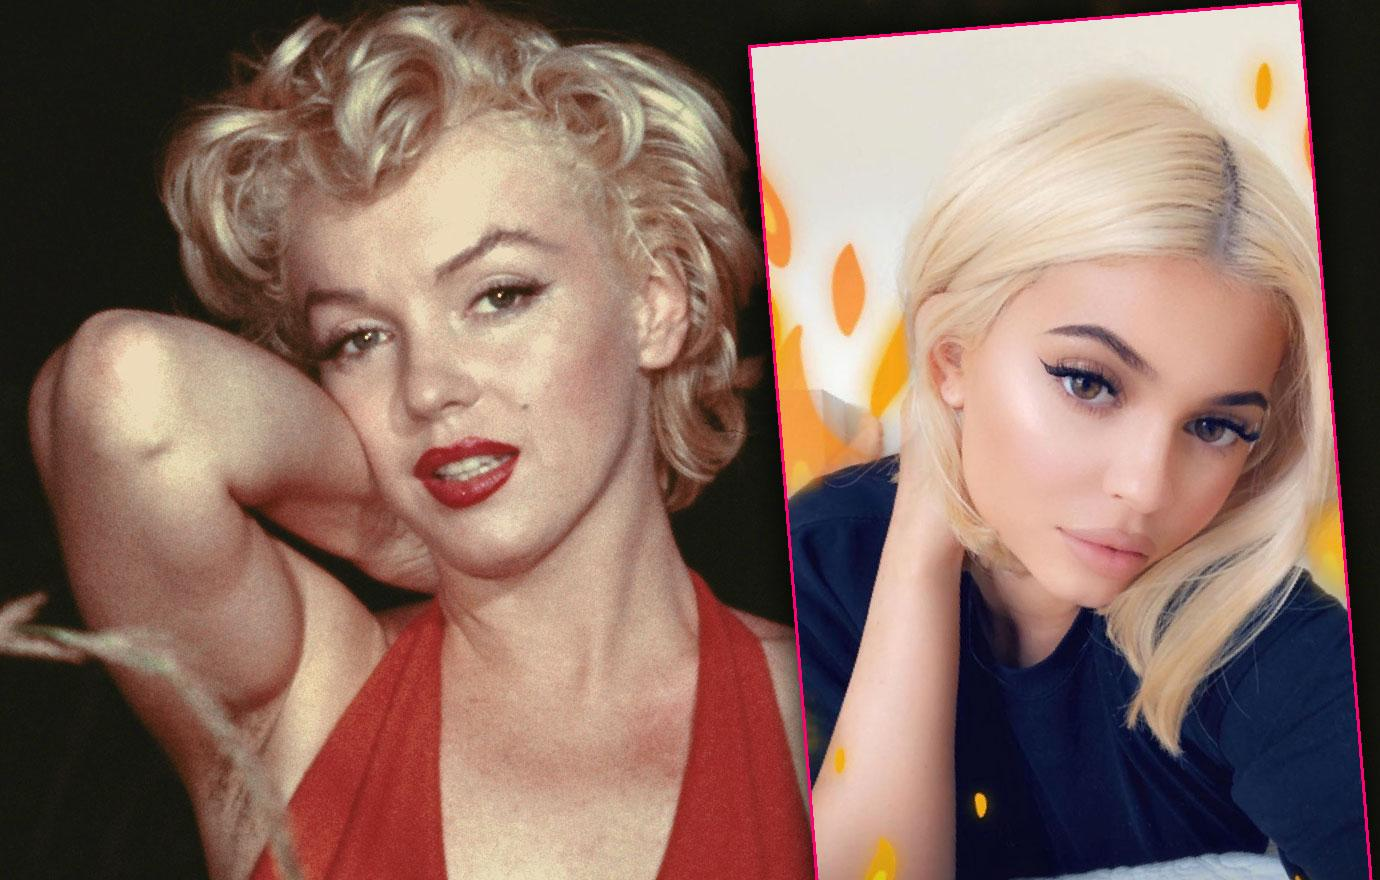 Kylie Jenner Channels Marilyn Monroe With Blonde Hair